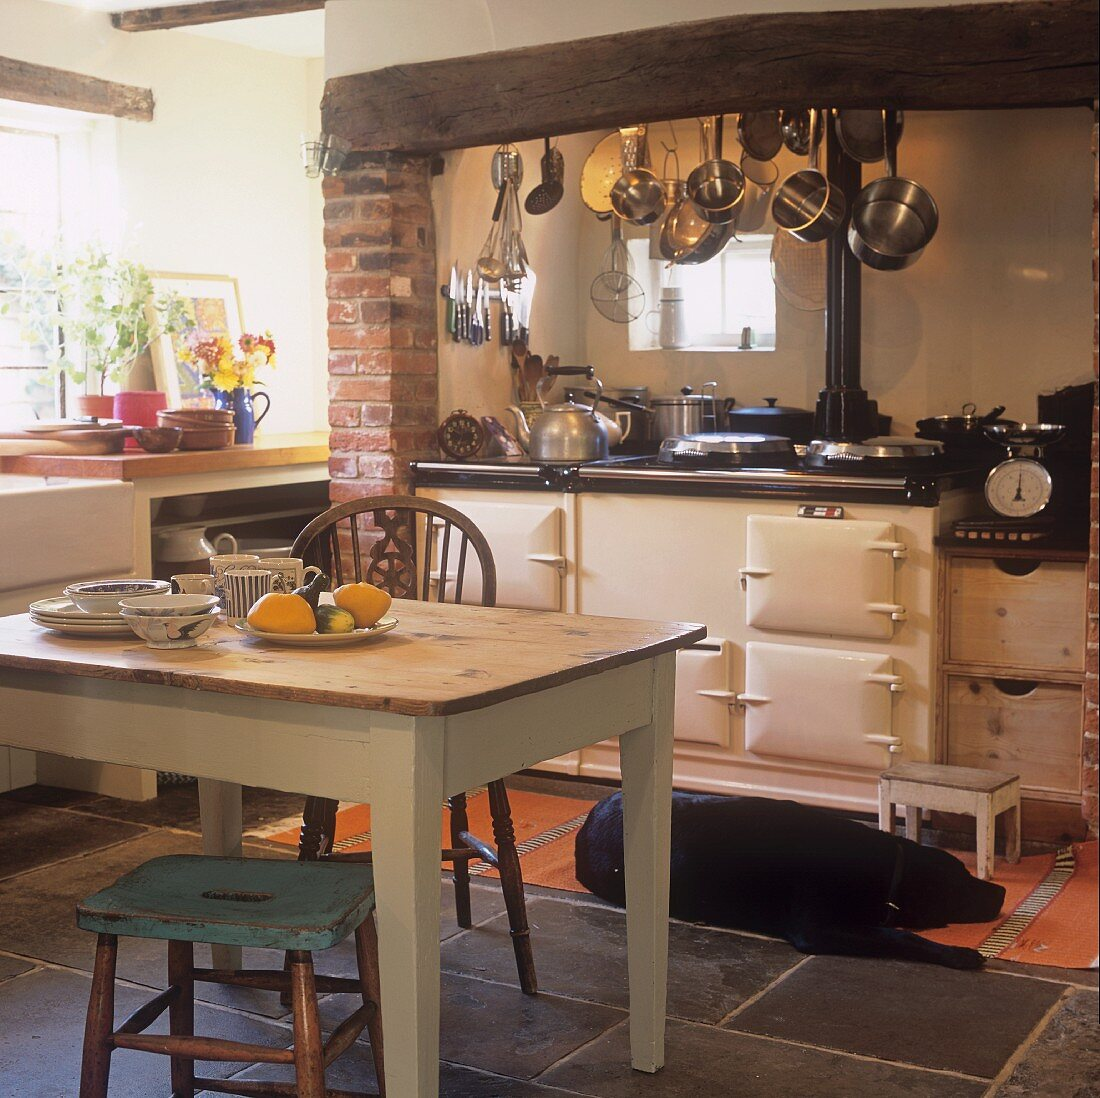 A rustic kitchen with a wood-fired oven